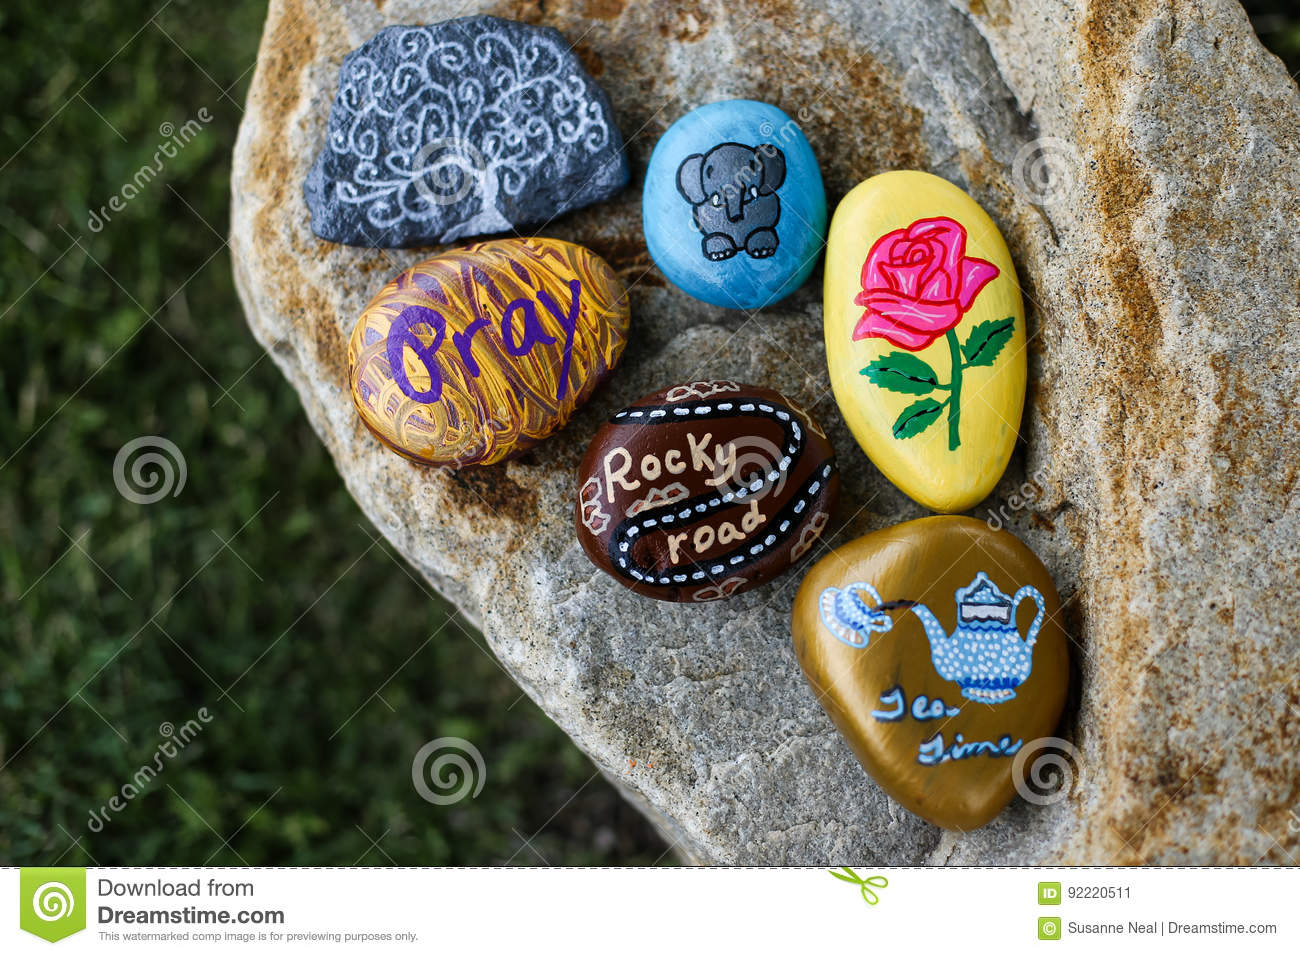 Group of painted rocks on a small boulder